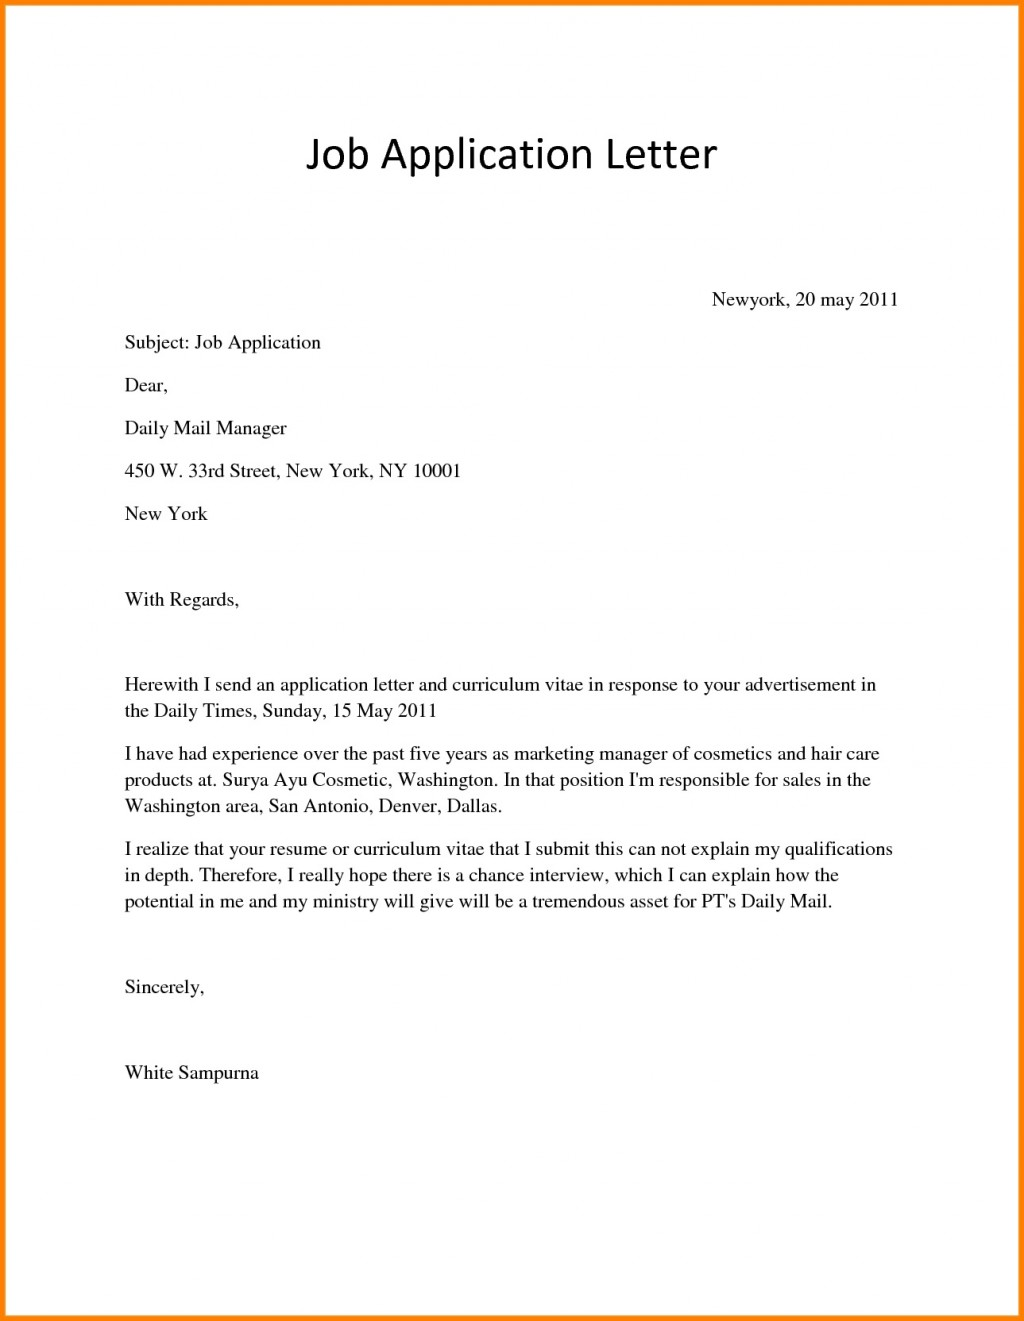 Application For Employment Template Job Letter  Free Sample PdfLarge